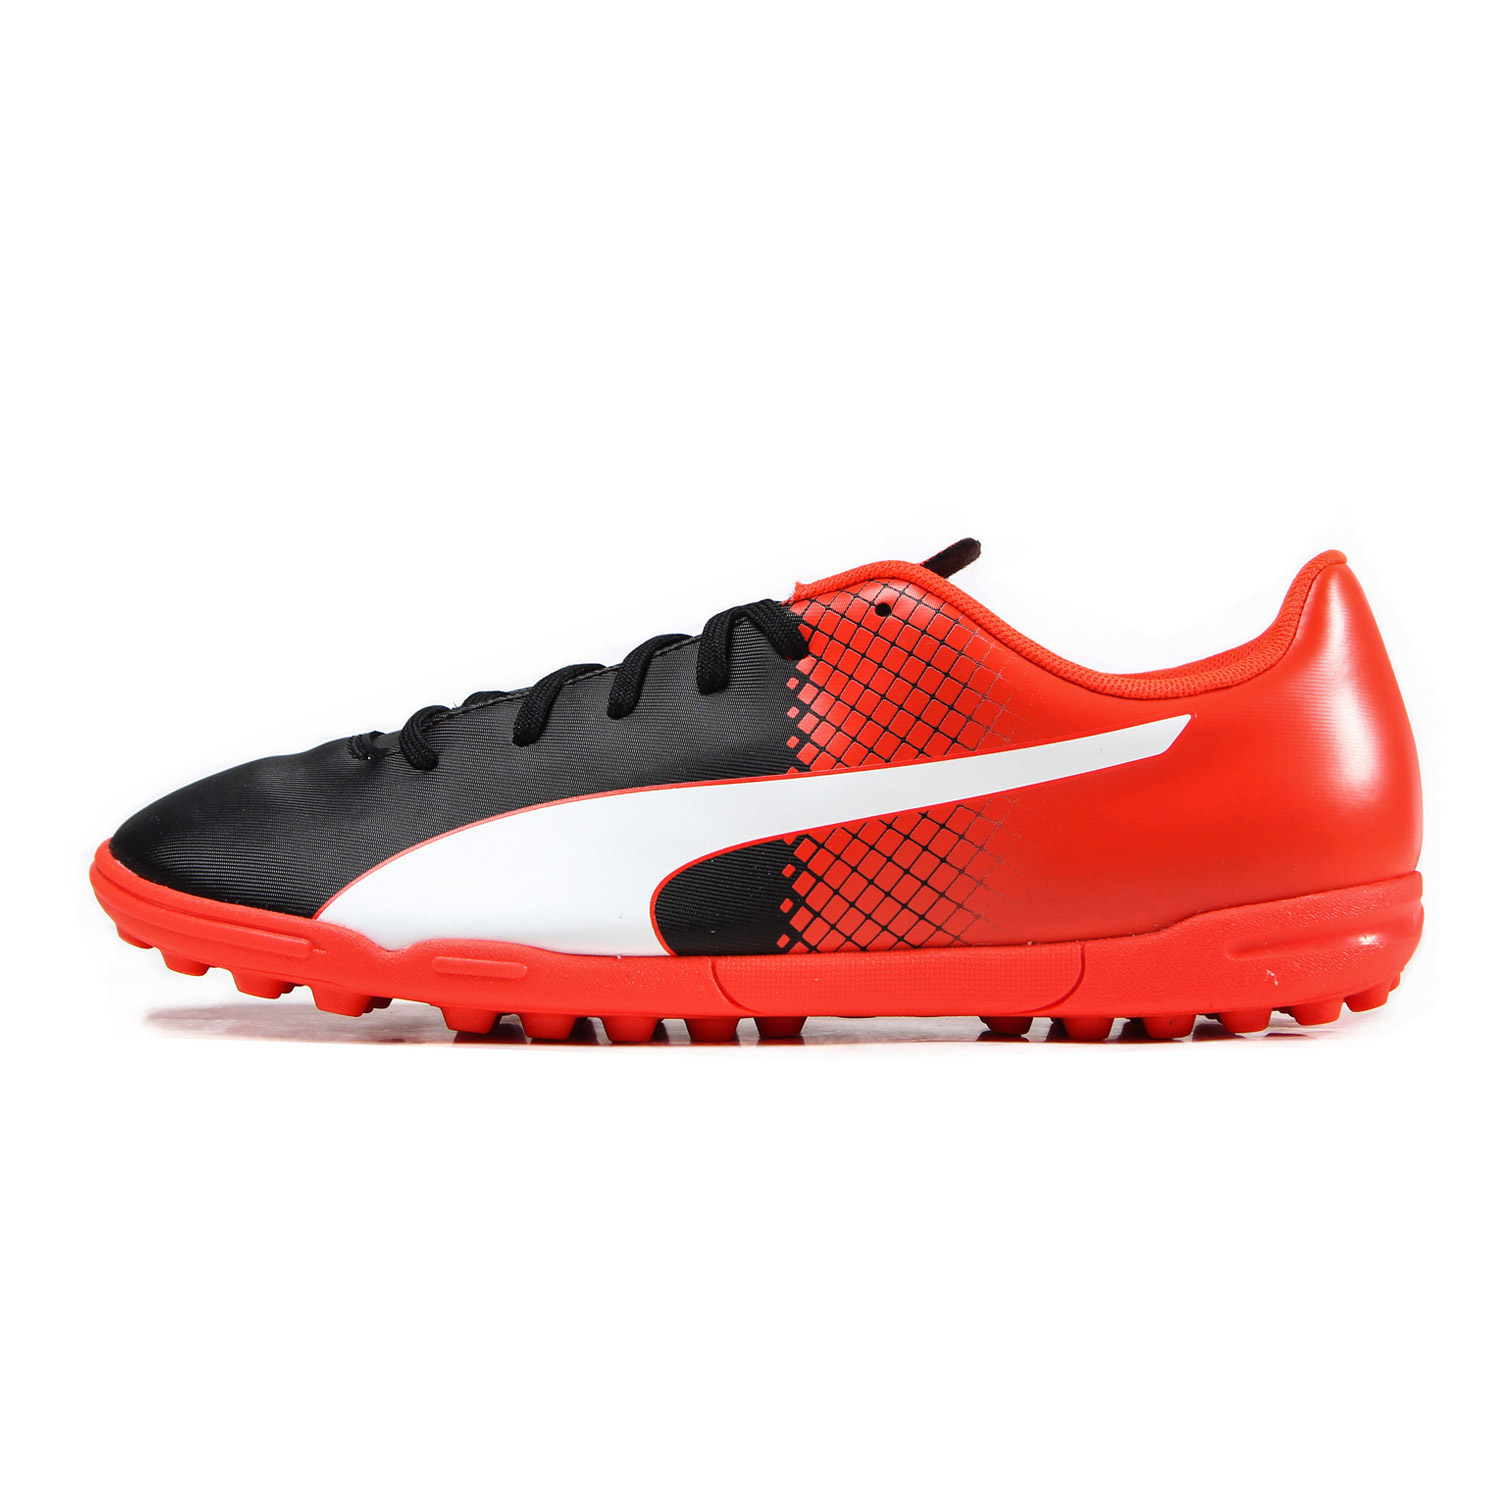 185f8f6ba Buy Puma puma shoes broken nails mens soccer shoes soccer shoes for  children of men and women genuine foot training shoes sneakers men in Cheap  Price on ...